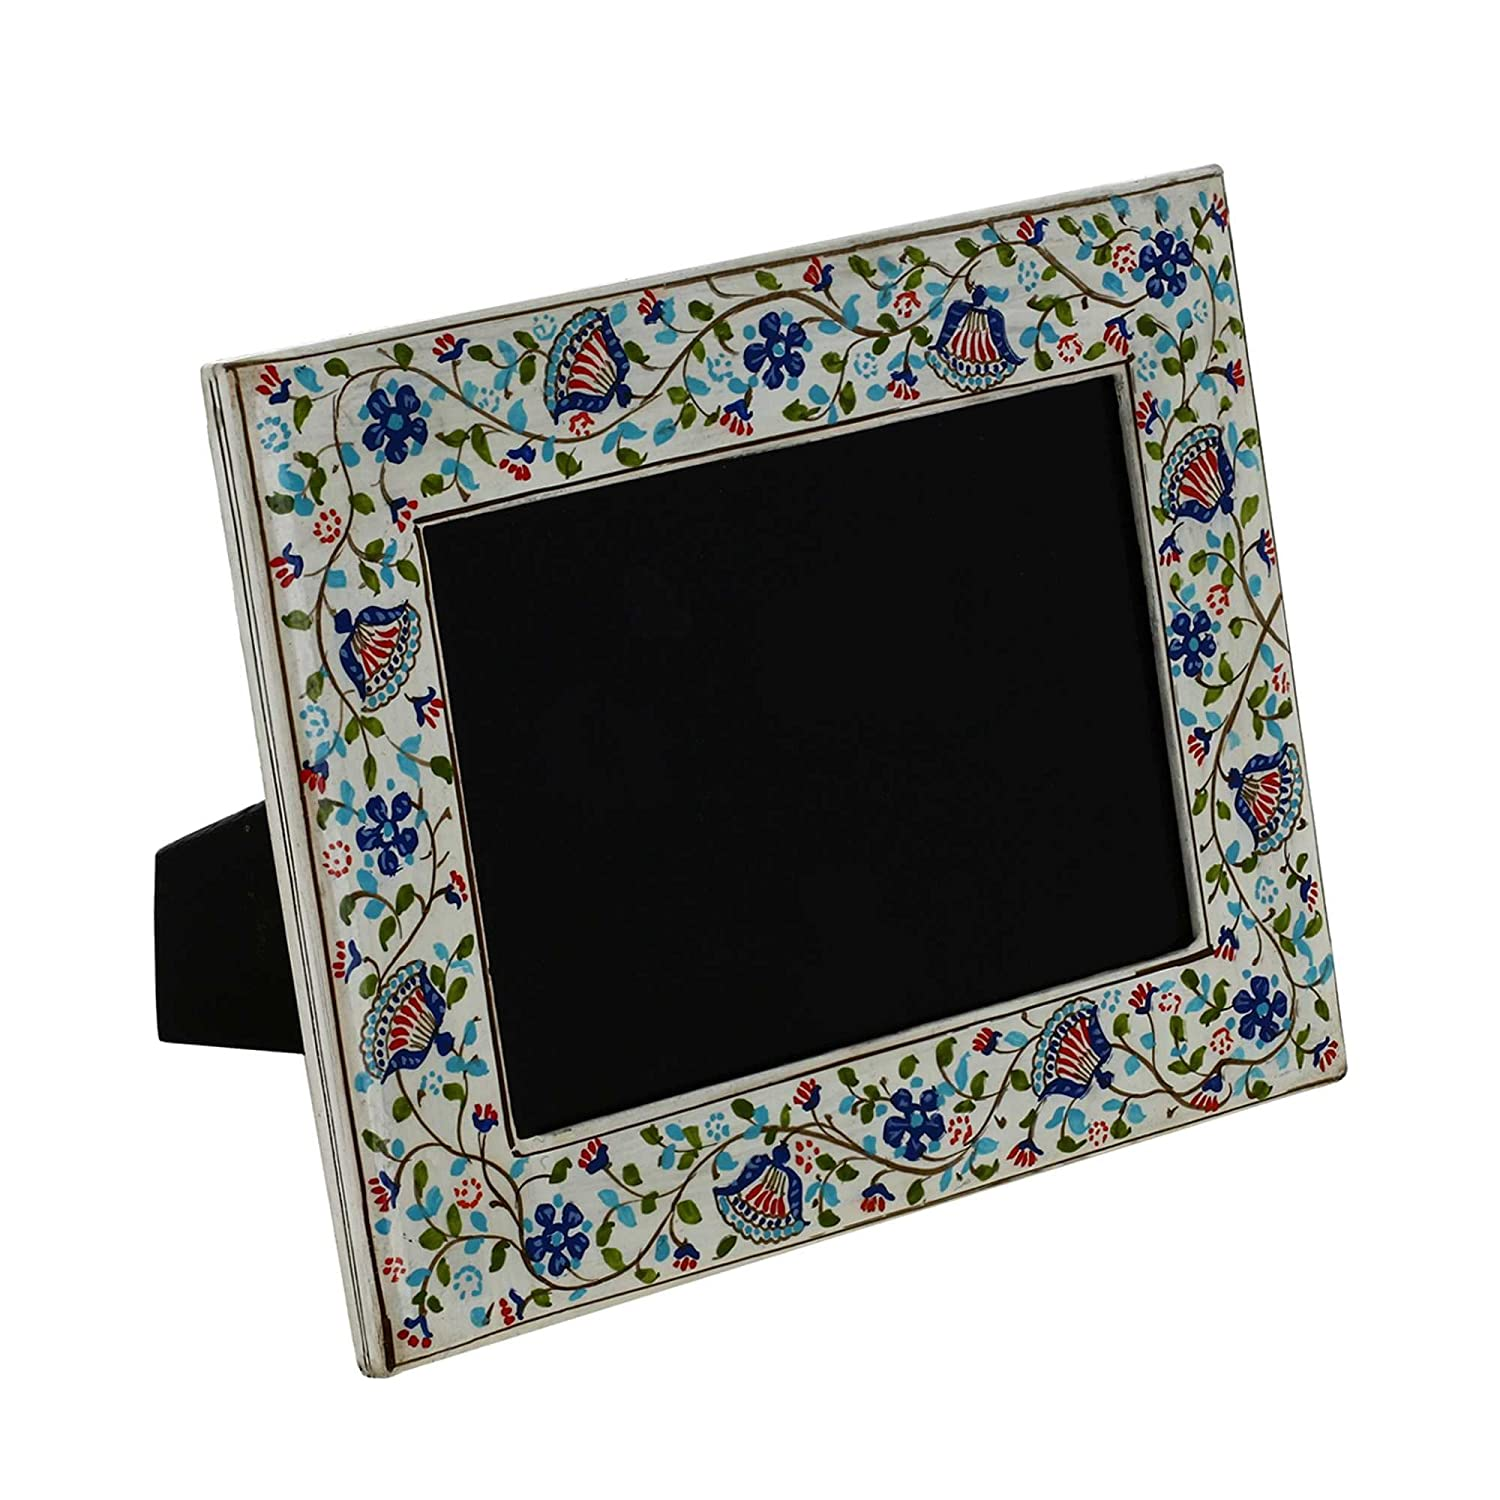 Photo Frames Paper Mache Kashmir White Floral Handmade Gifts Indian ShalinCraft MN-photo_frame_white